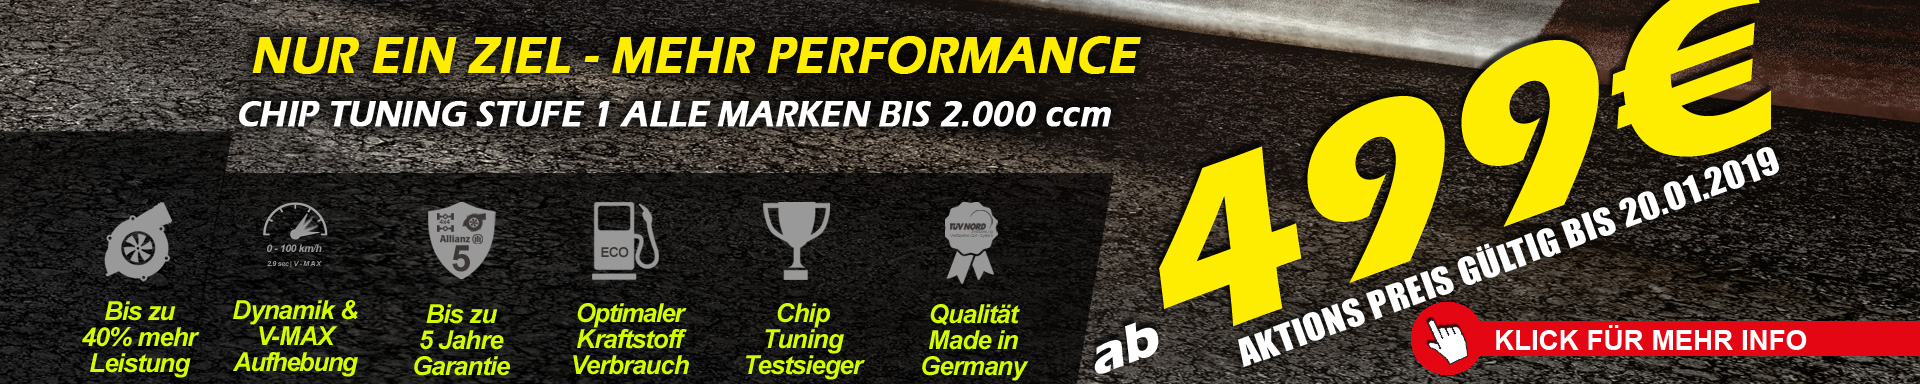 CHIP TUNING LEVEL 1 - ВСЕ БРЕНДЫ К 2000 ccm от 499 €